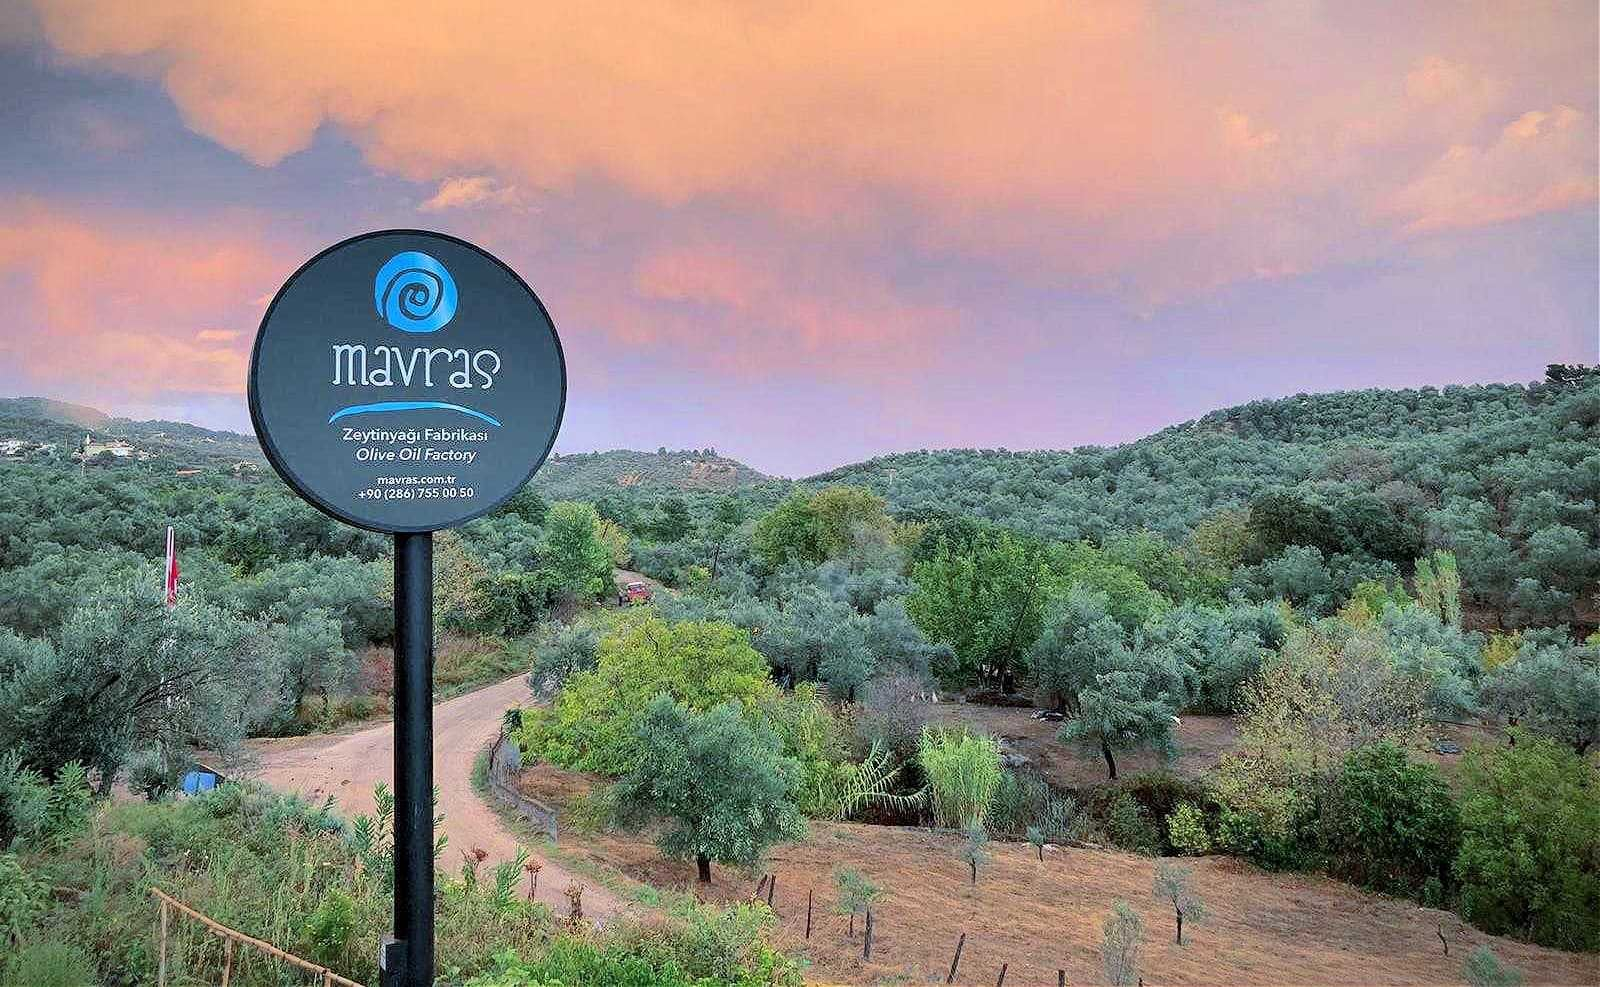 africa-middle-east-profiles-production-mavras-olive-oil-company-relies-on-tradition-terroir-to-produce-quality-evoo-olive-oil-times